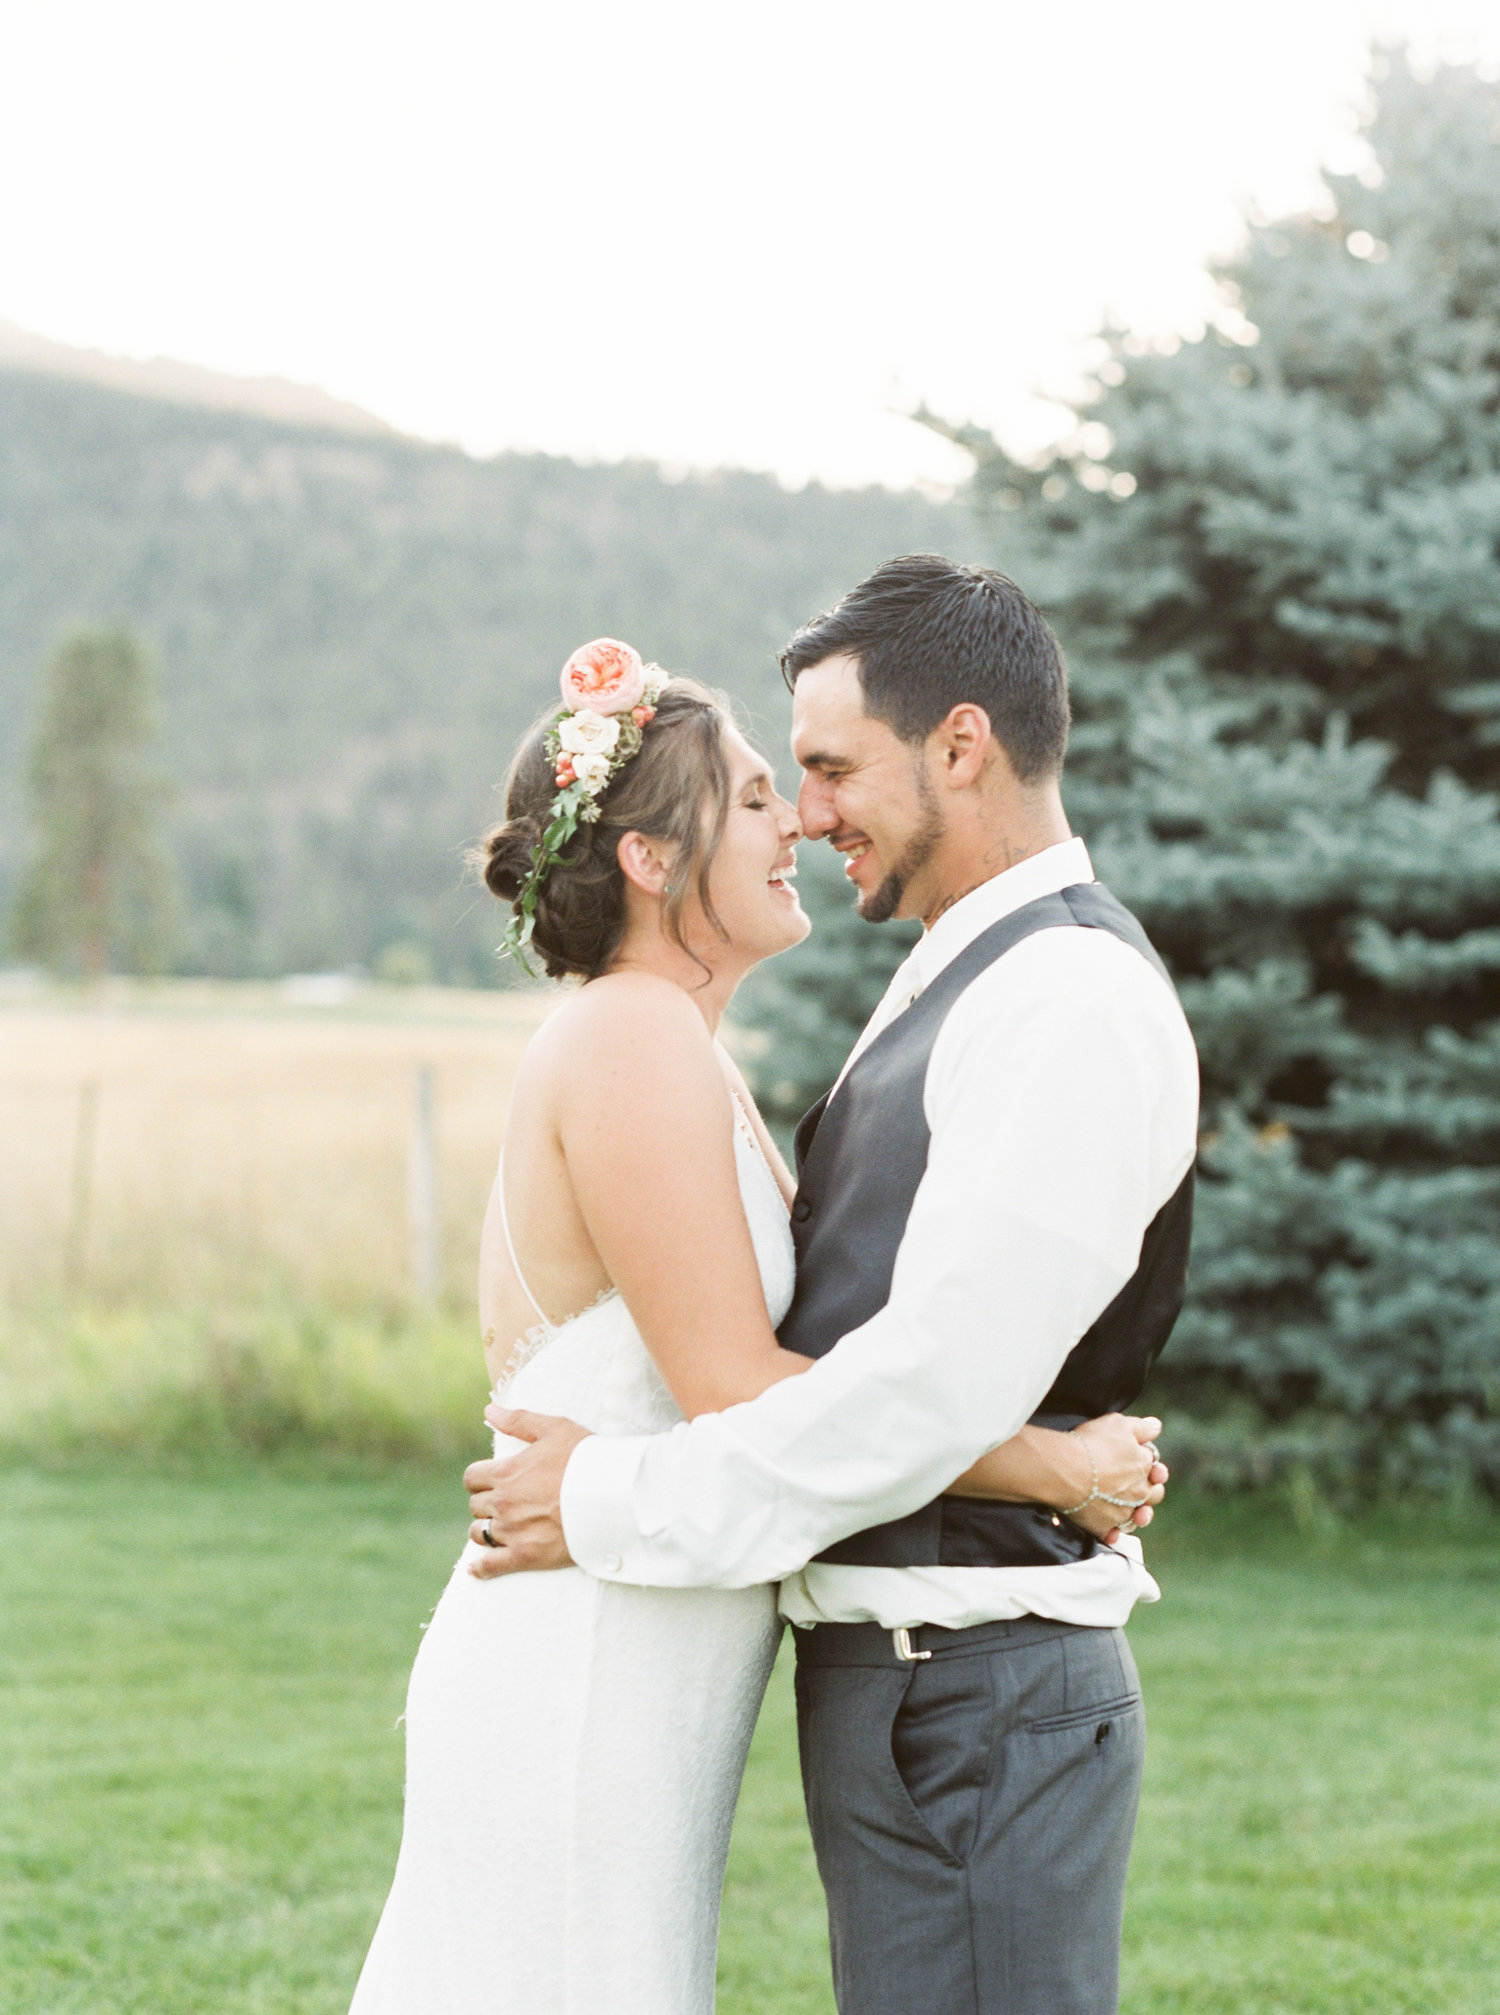 jenn robert intimate backyard wedding montana wedding